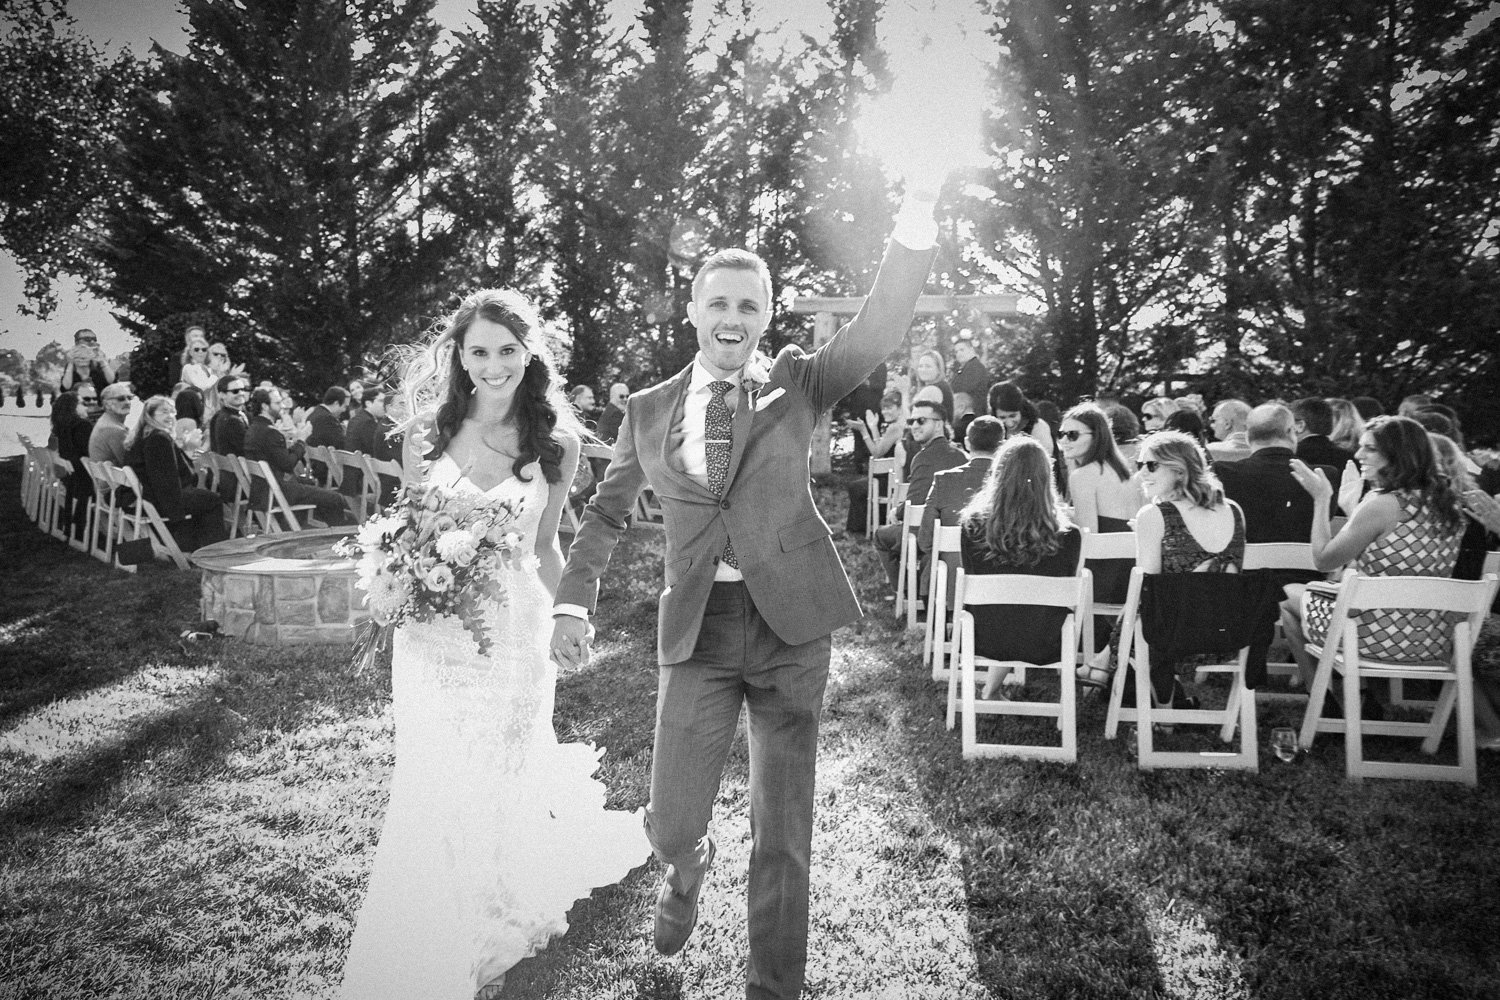 image of bride and groom celebrating wedding ceremony exit at private residence wedding ceremony Gettysburg